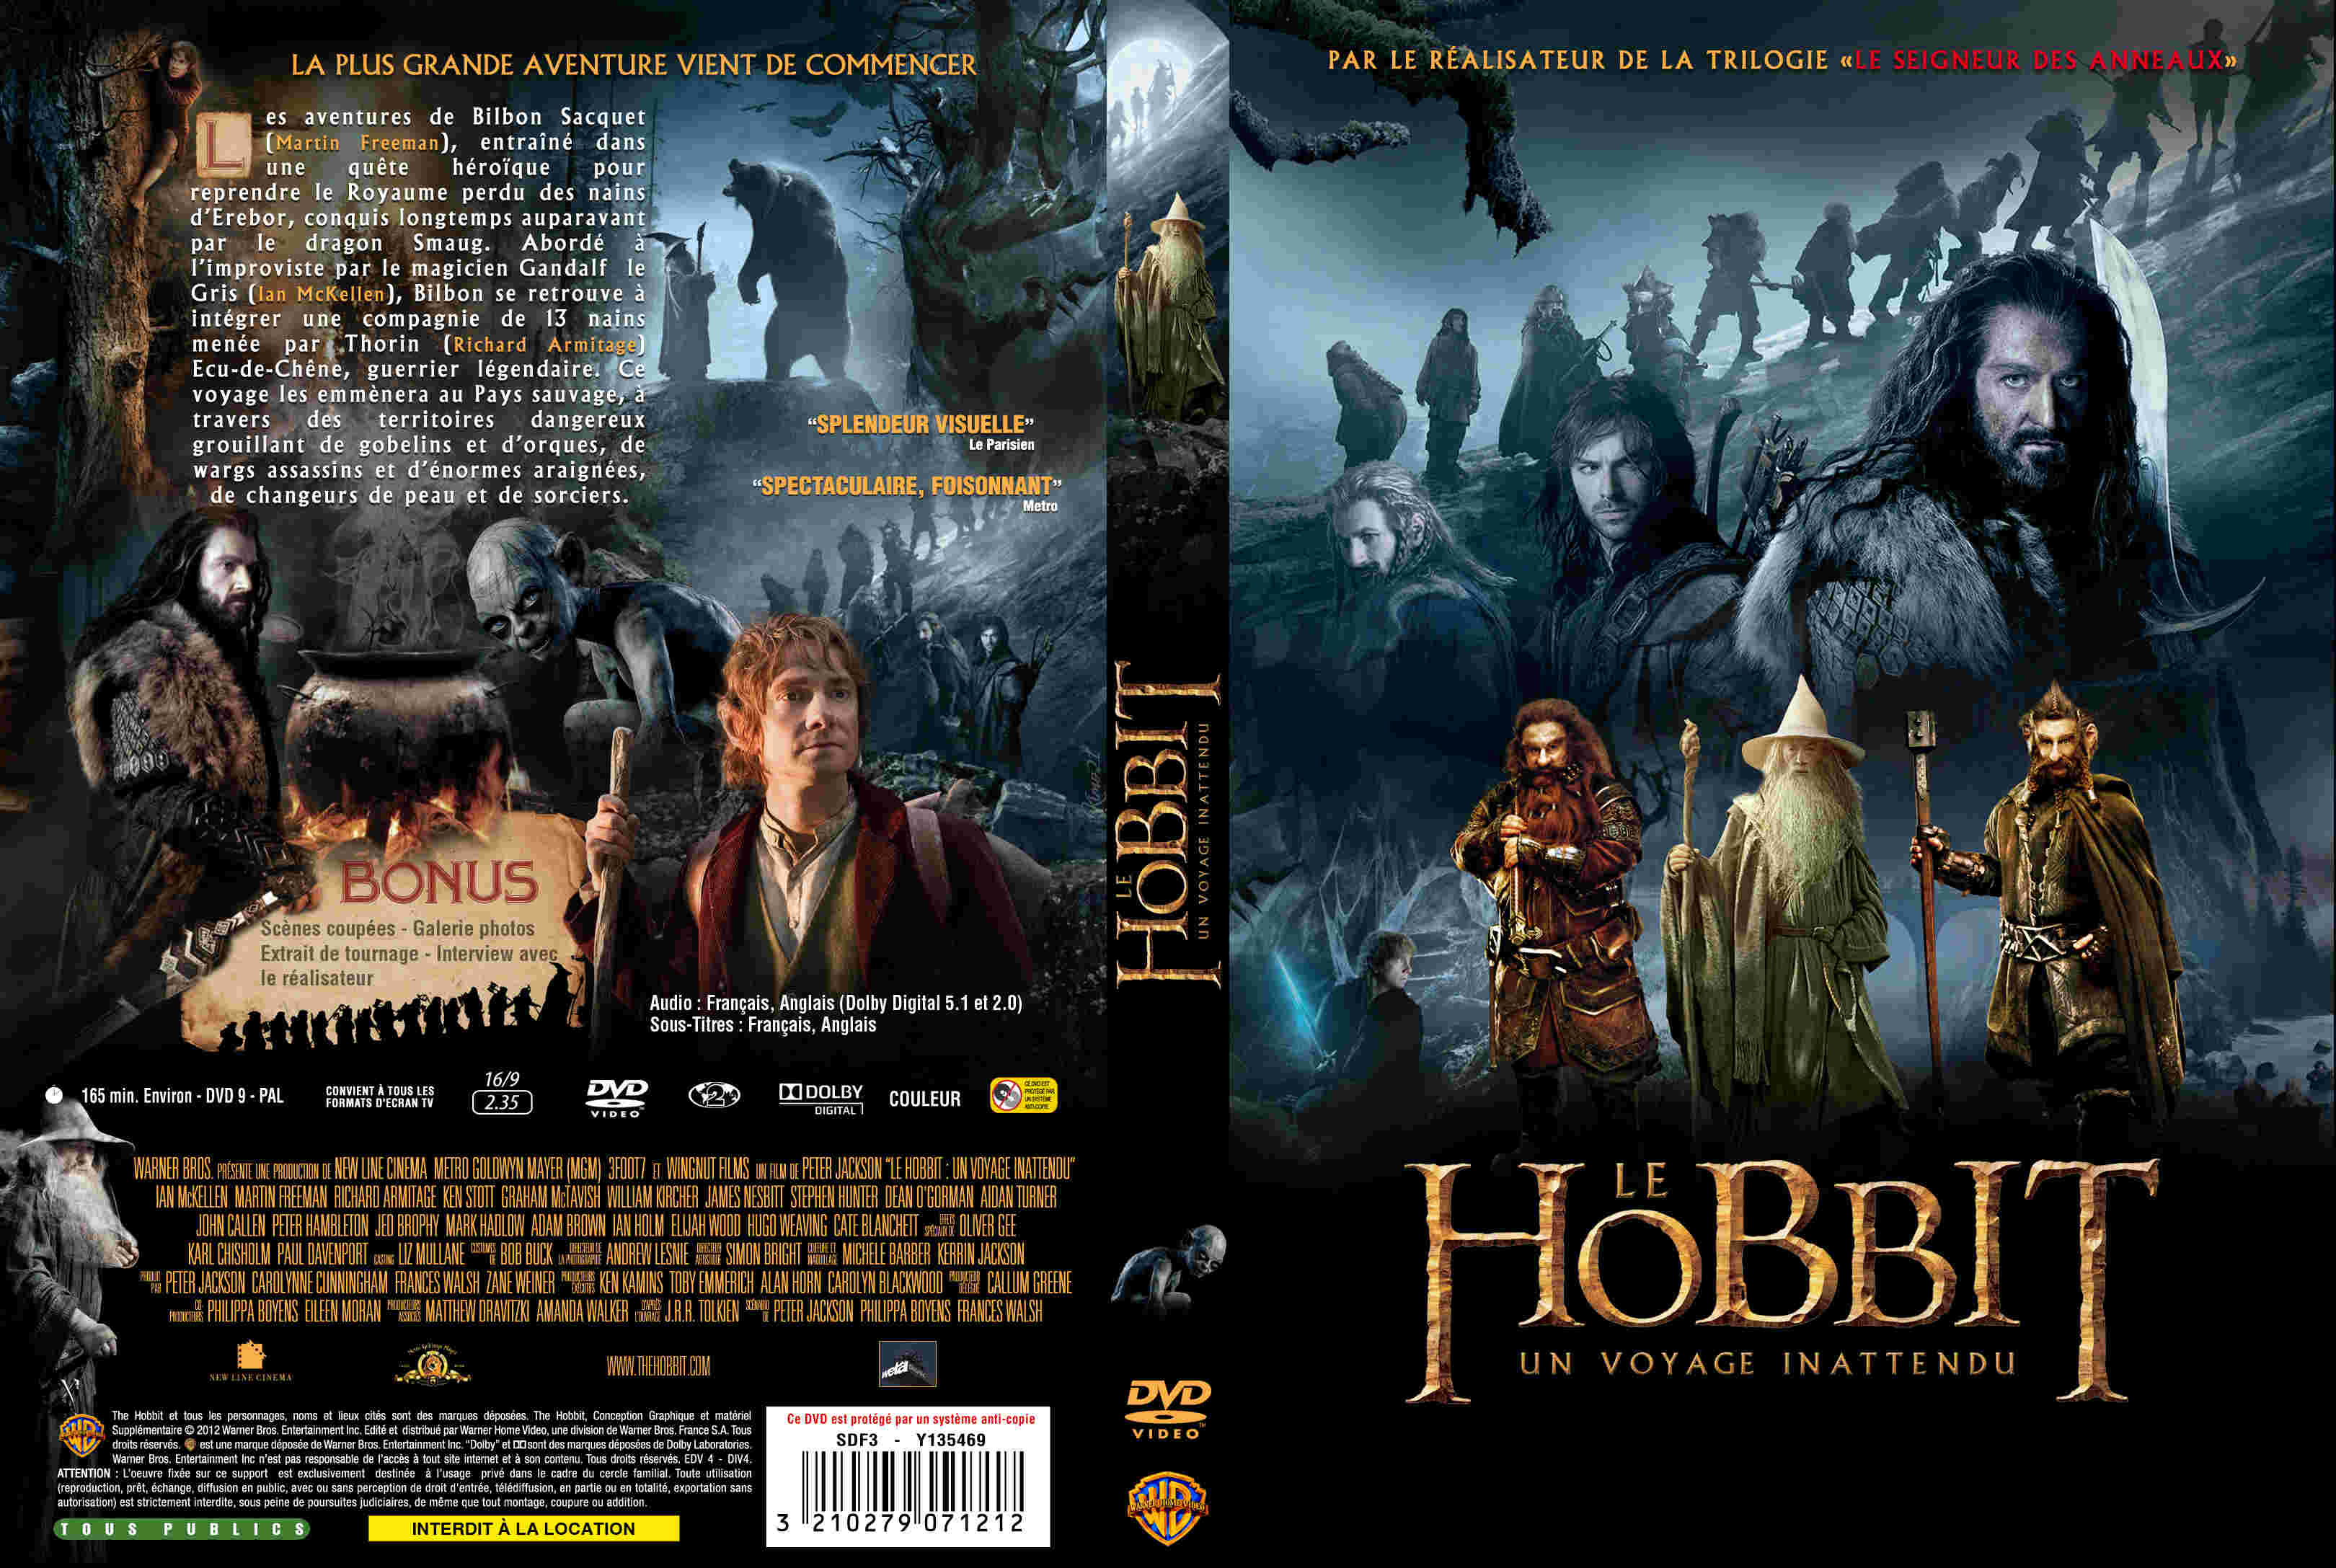 The_Hobbit_(2012)_R2-[front]-[www.FreeCovers.net]